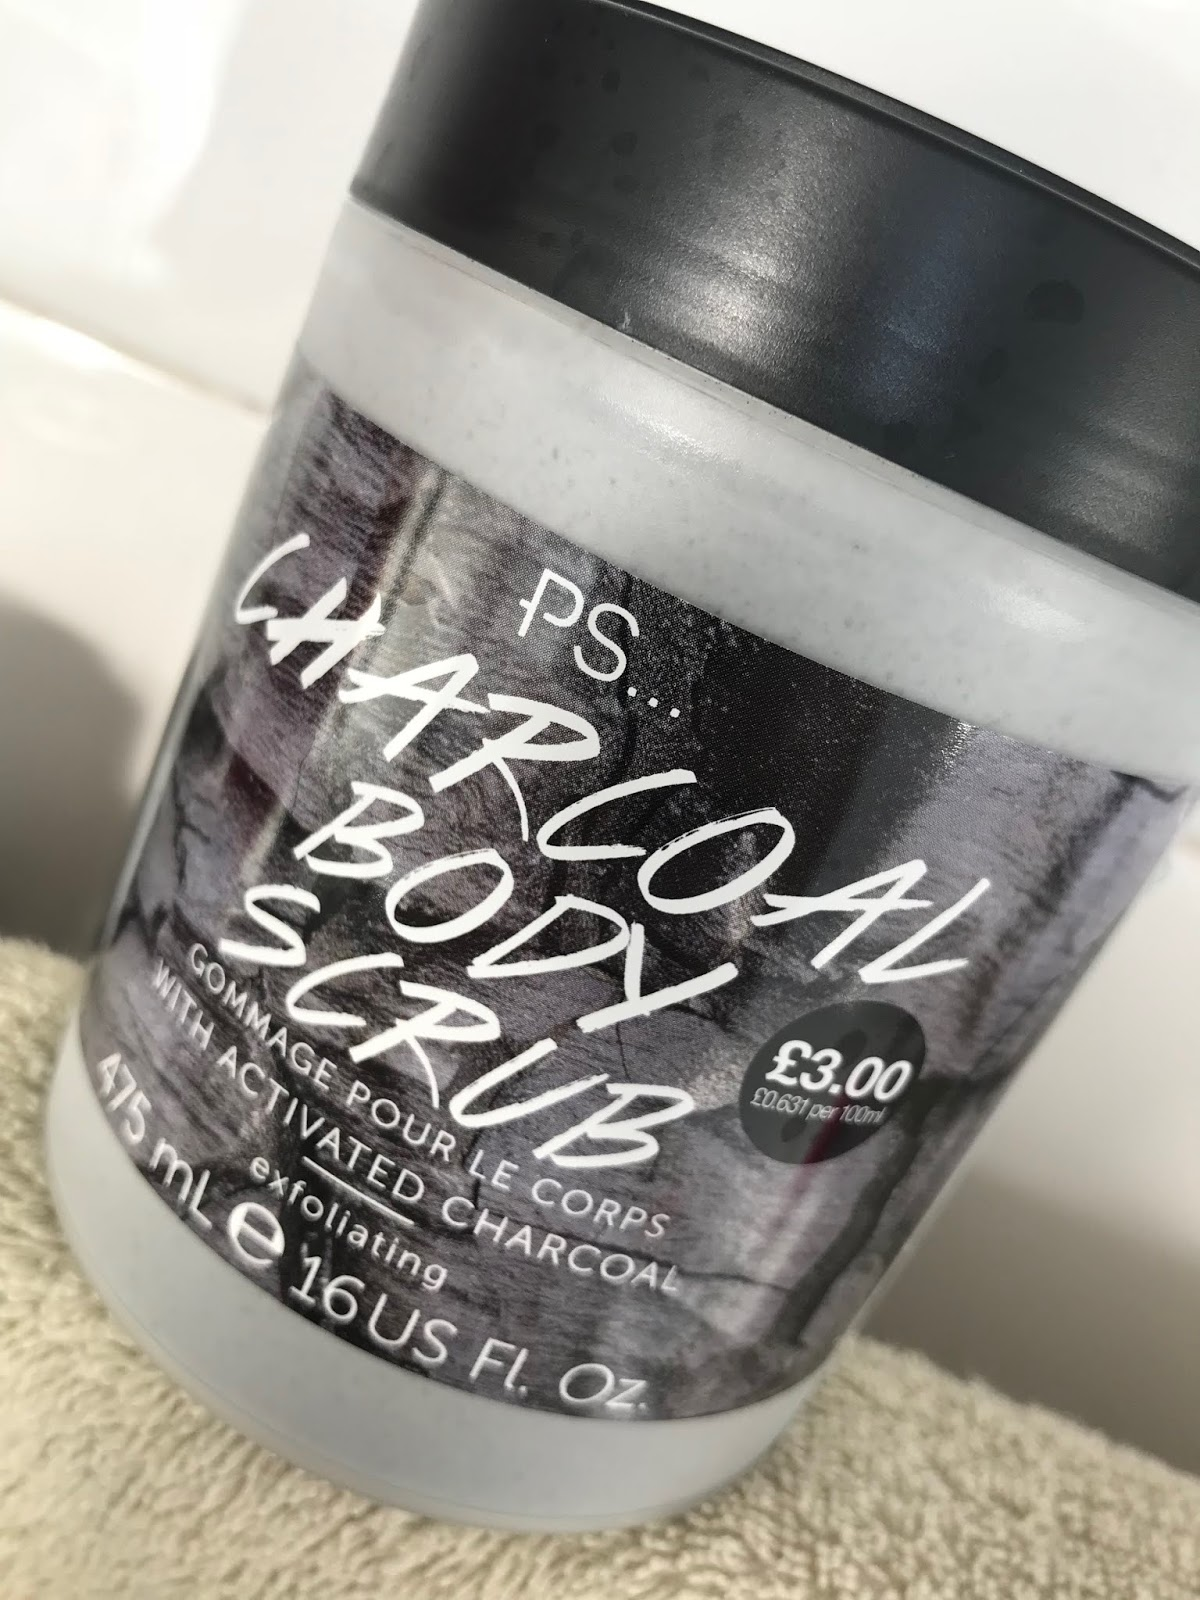 3b459b64 So while I was buying something (lots of things) in Primark recently, I  threw a tub of their new charcoal scrub into my basket.